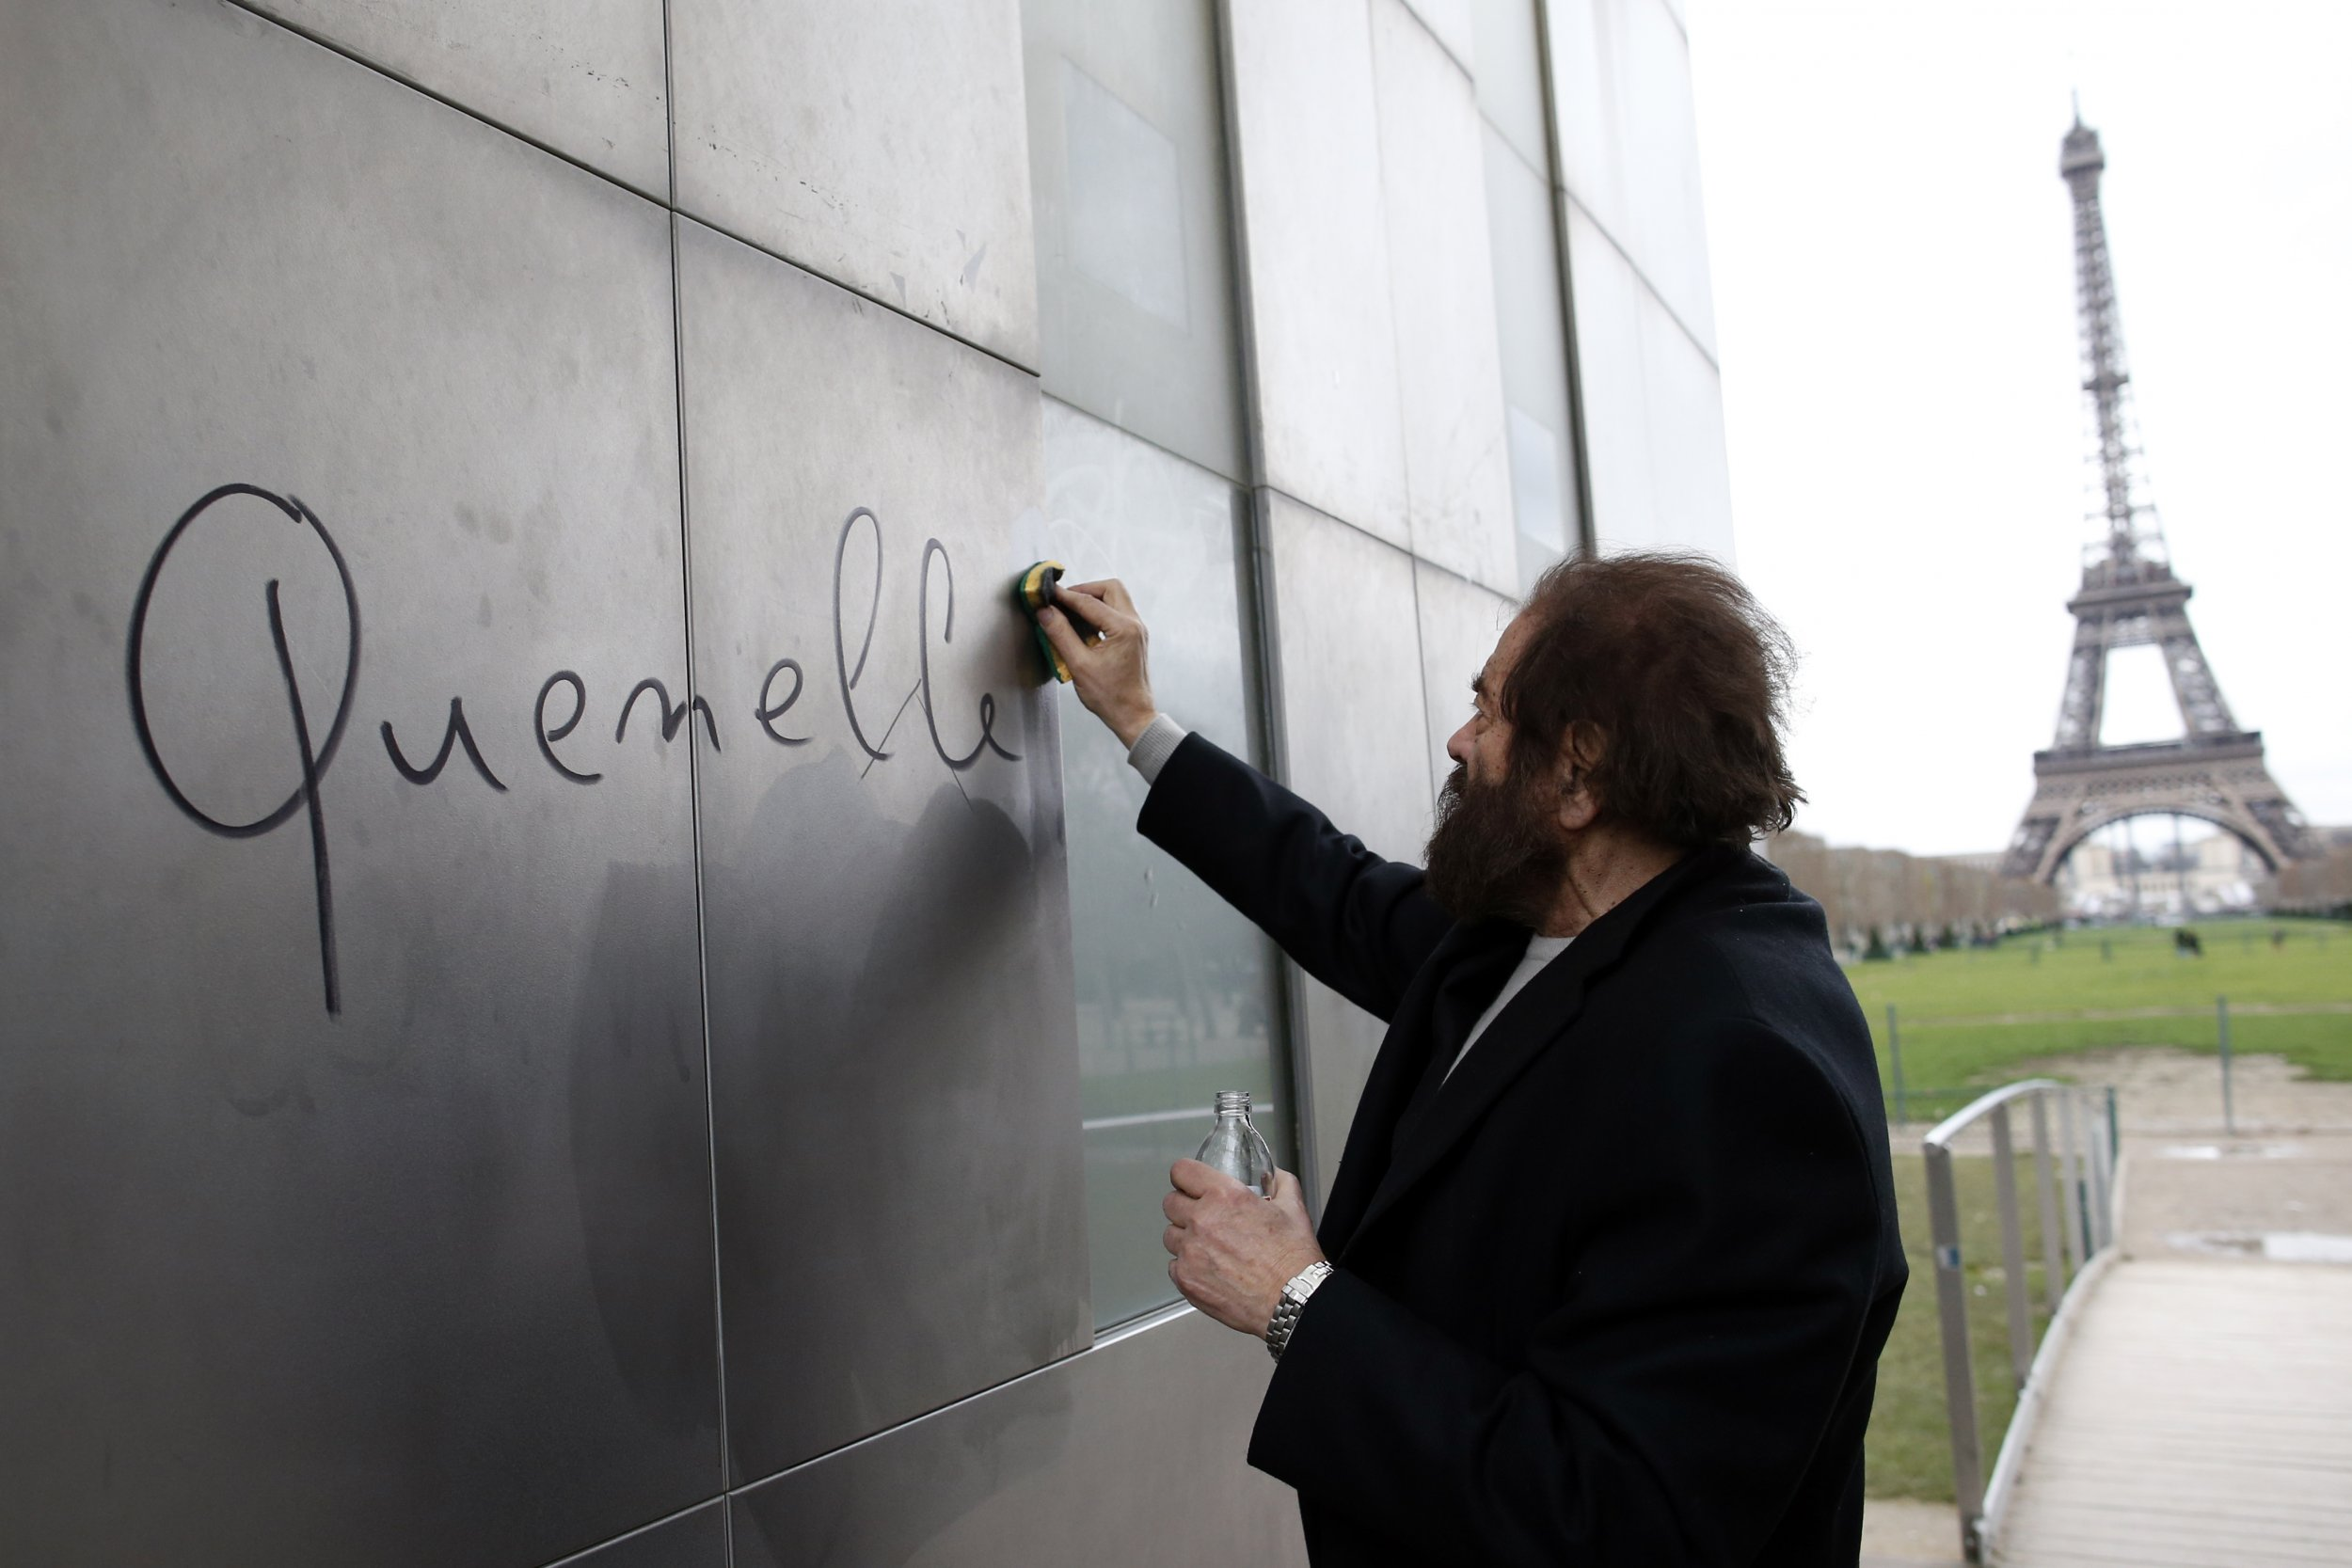 Man scrubs off Quenelle by the Eiffel Tower